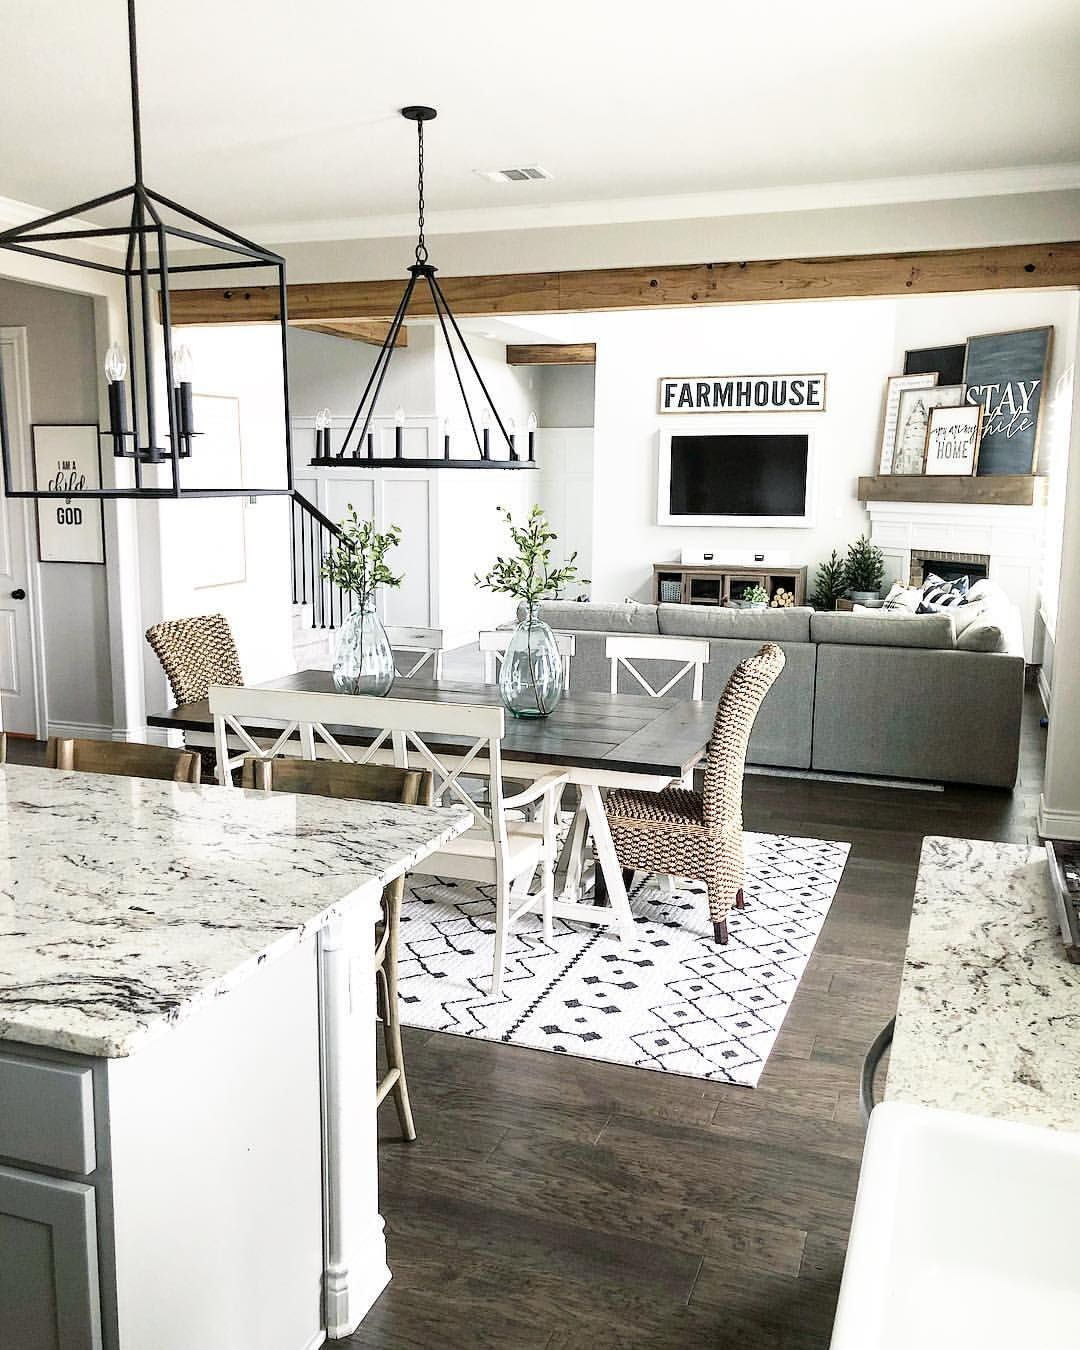 Family Room Kitchen Open Floor Plan White Kitchen: Farmhouse Style Open Layout With Kitchen, Dining Room And